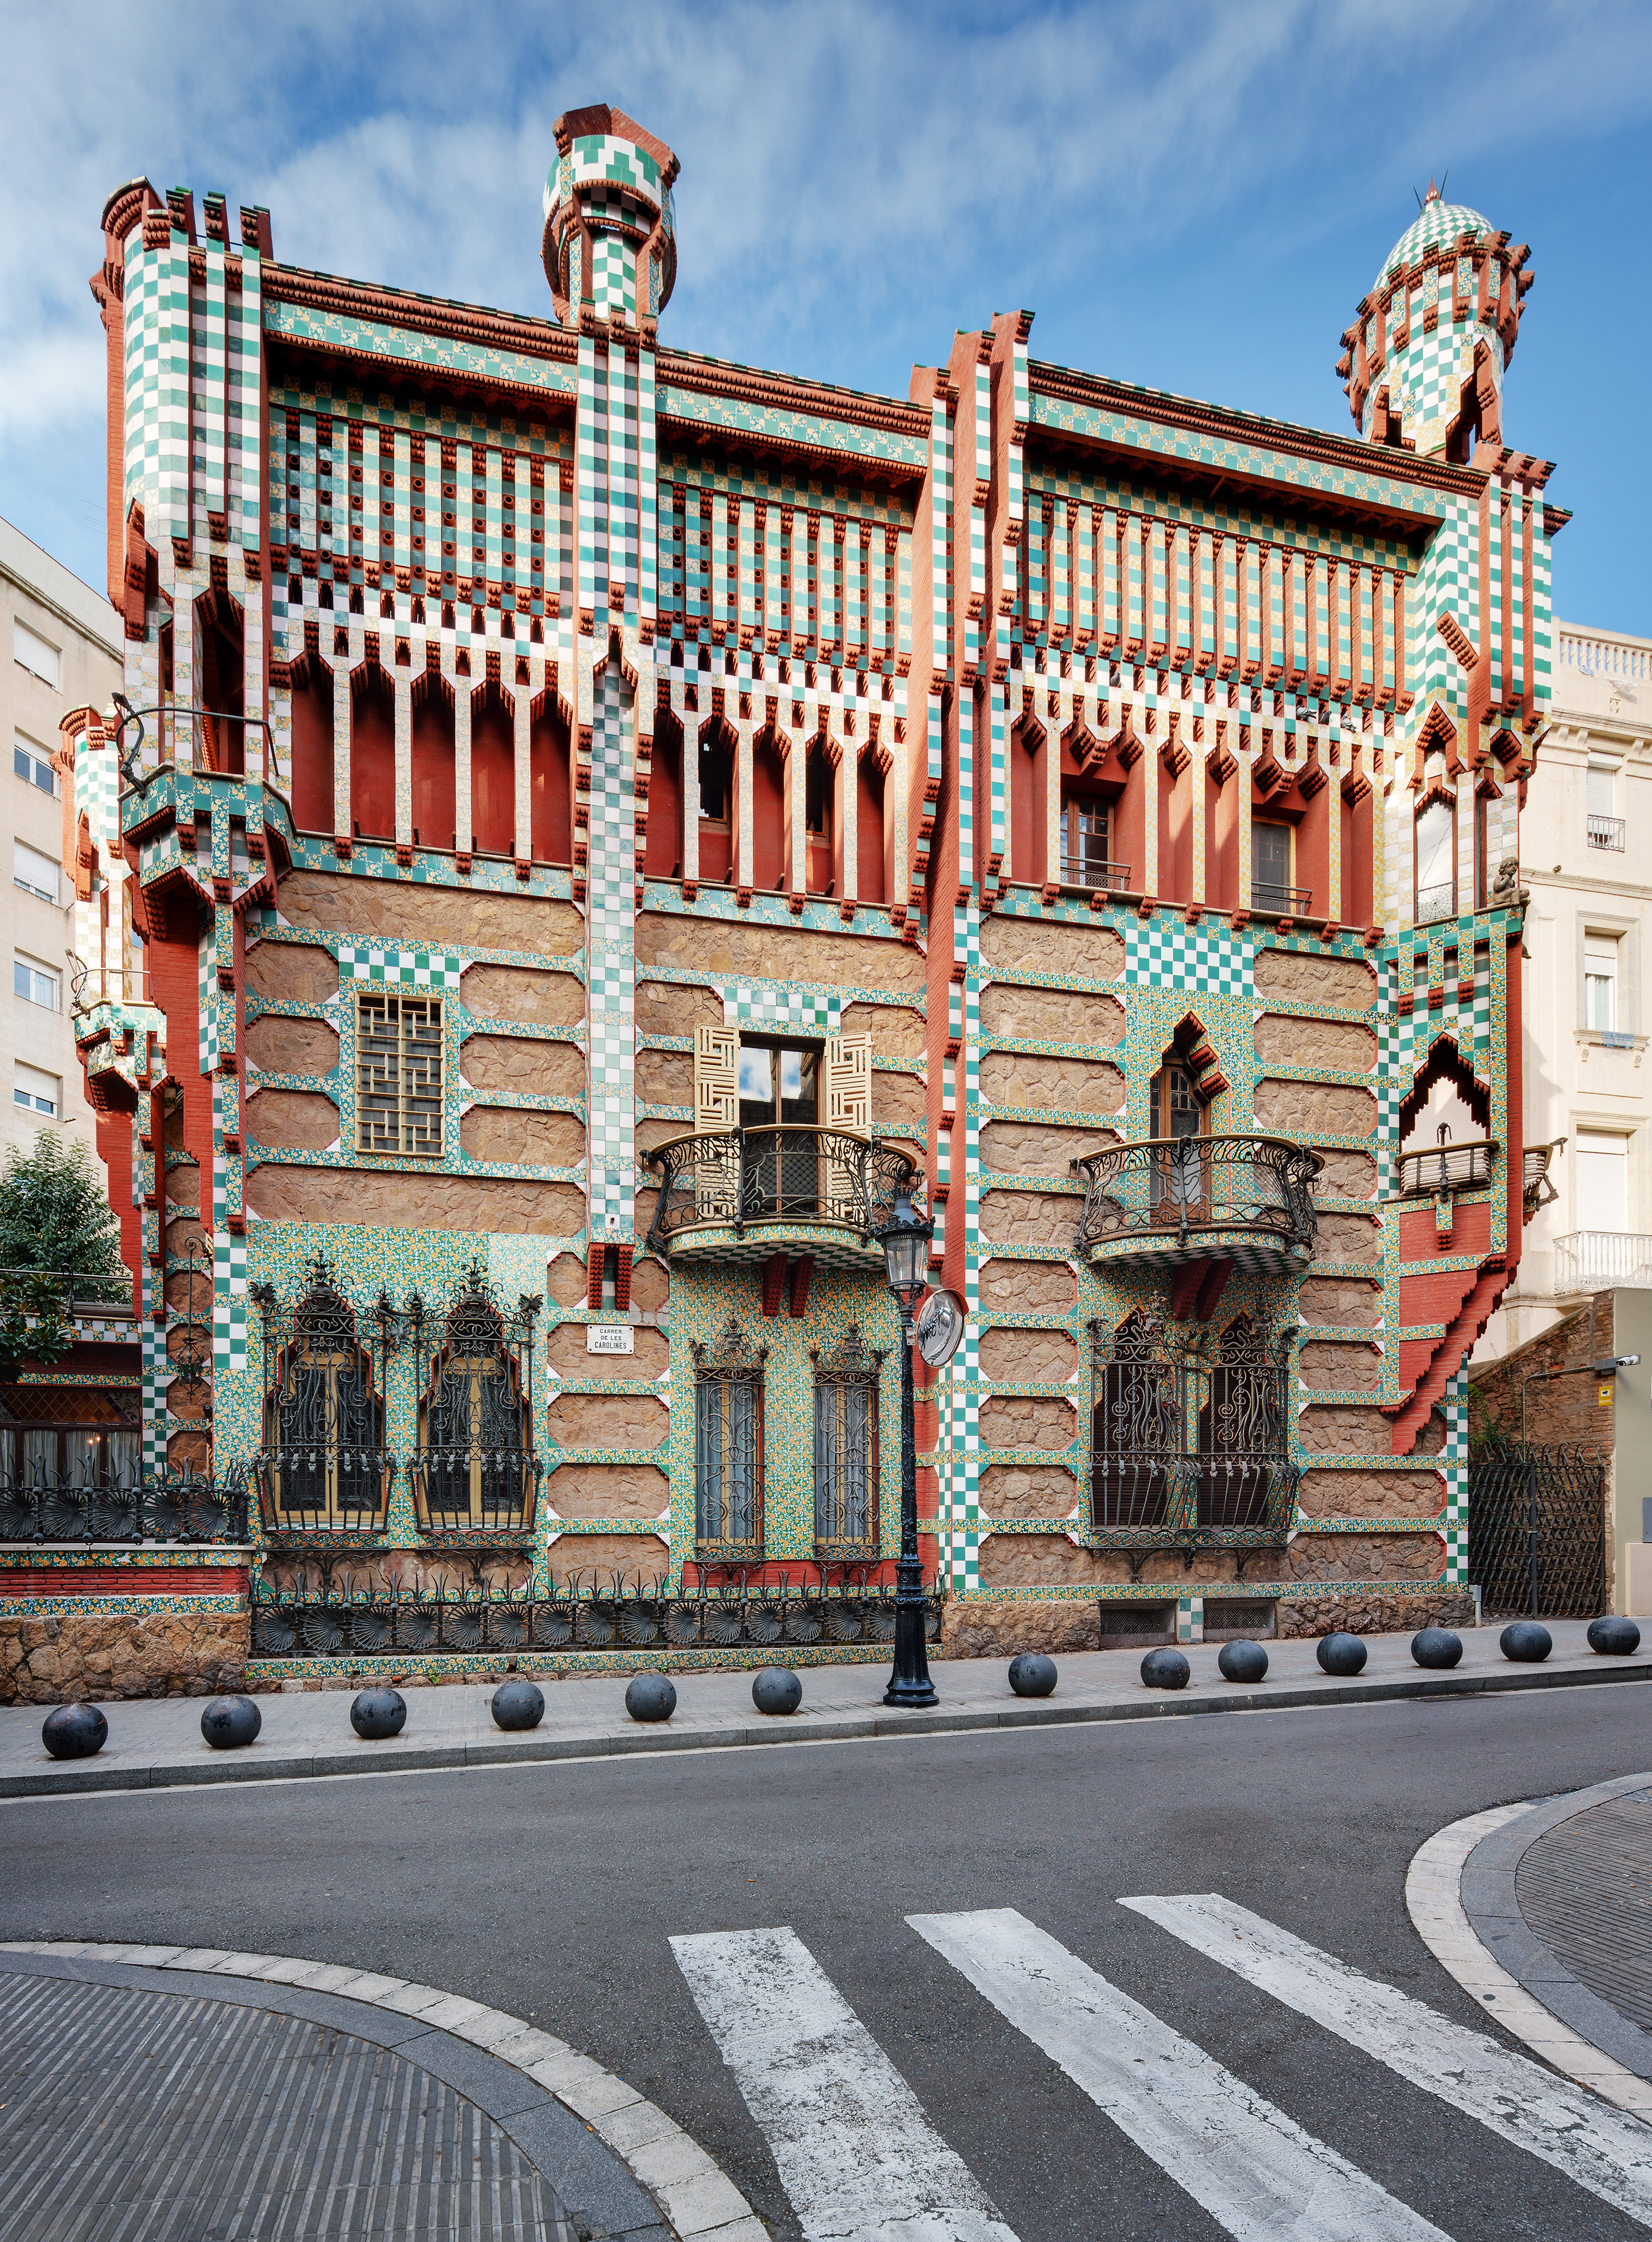 The exterior of Casa Vicens. Image by Pol Viladoms